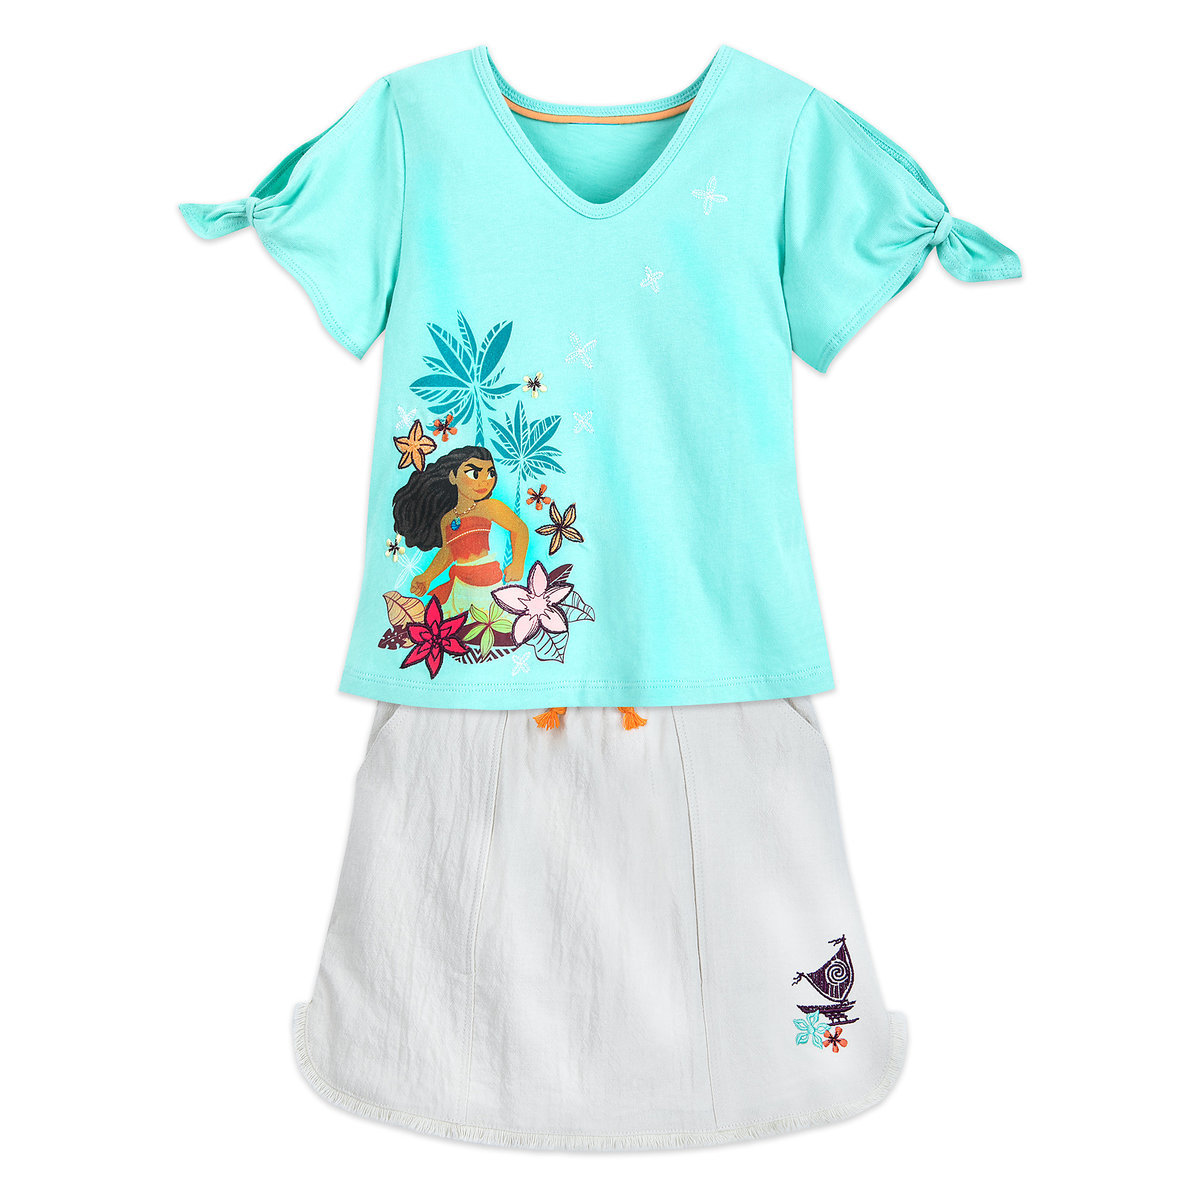 c0bfb437e Product Image of Moana T-Shirt and Shorts Set for Girls # 1